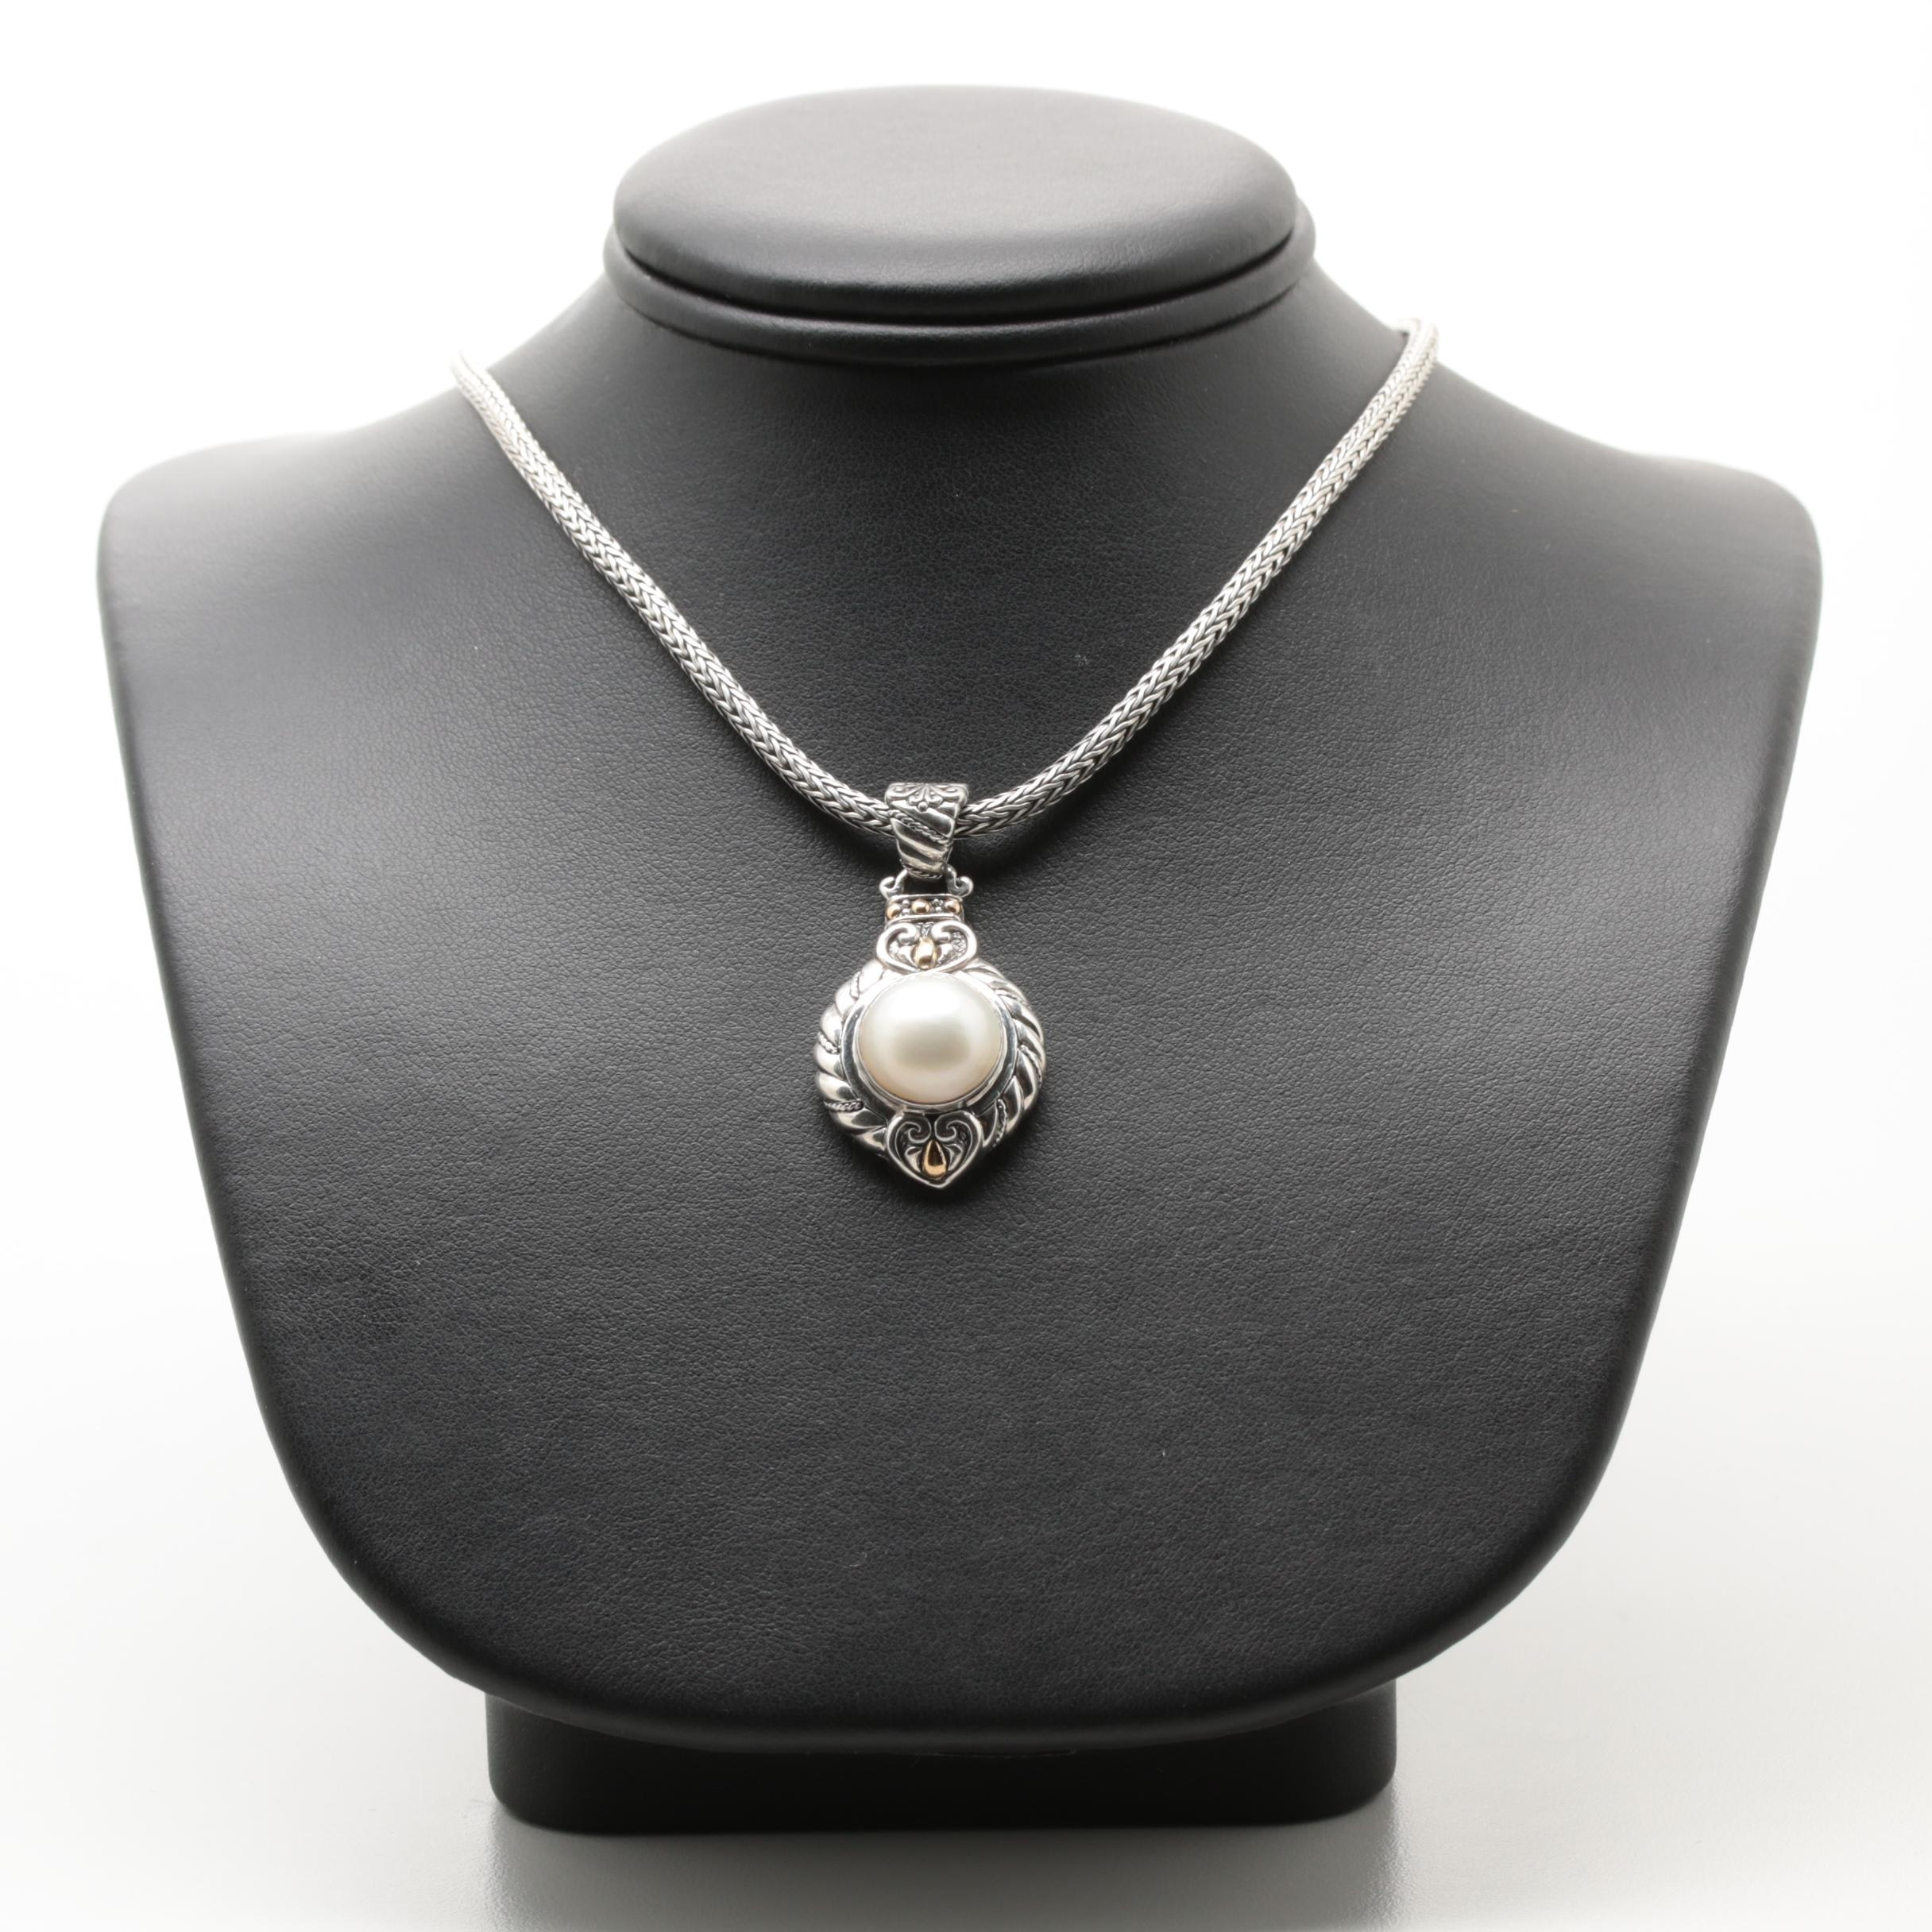 Robert Manse Sterling Silver Cultured Pearl Necklace with 18K Accents